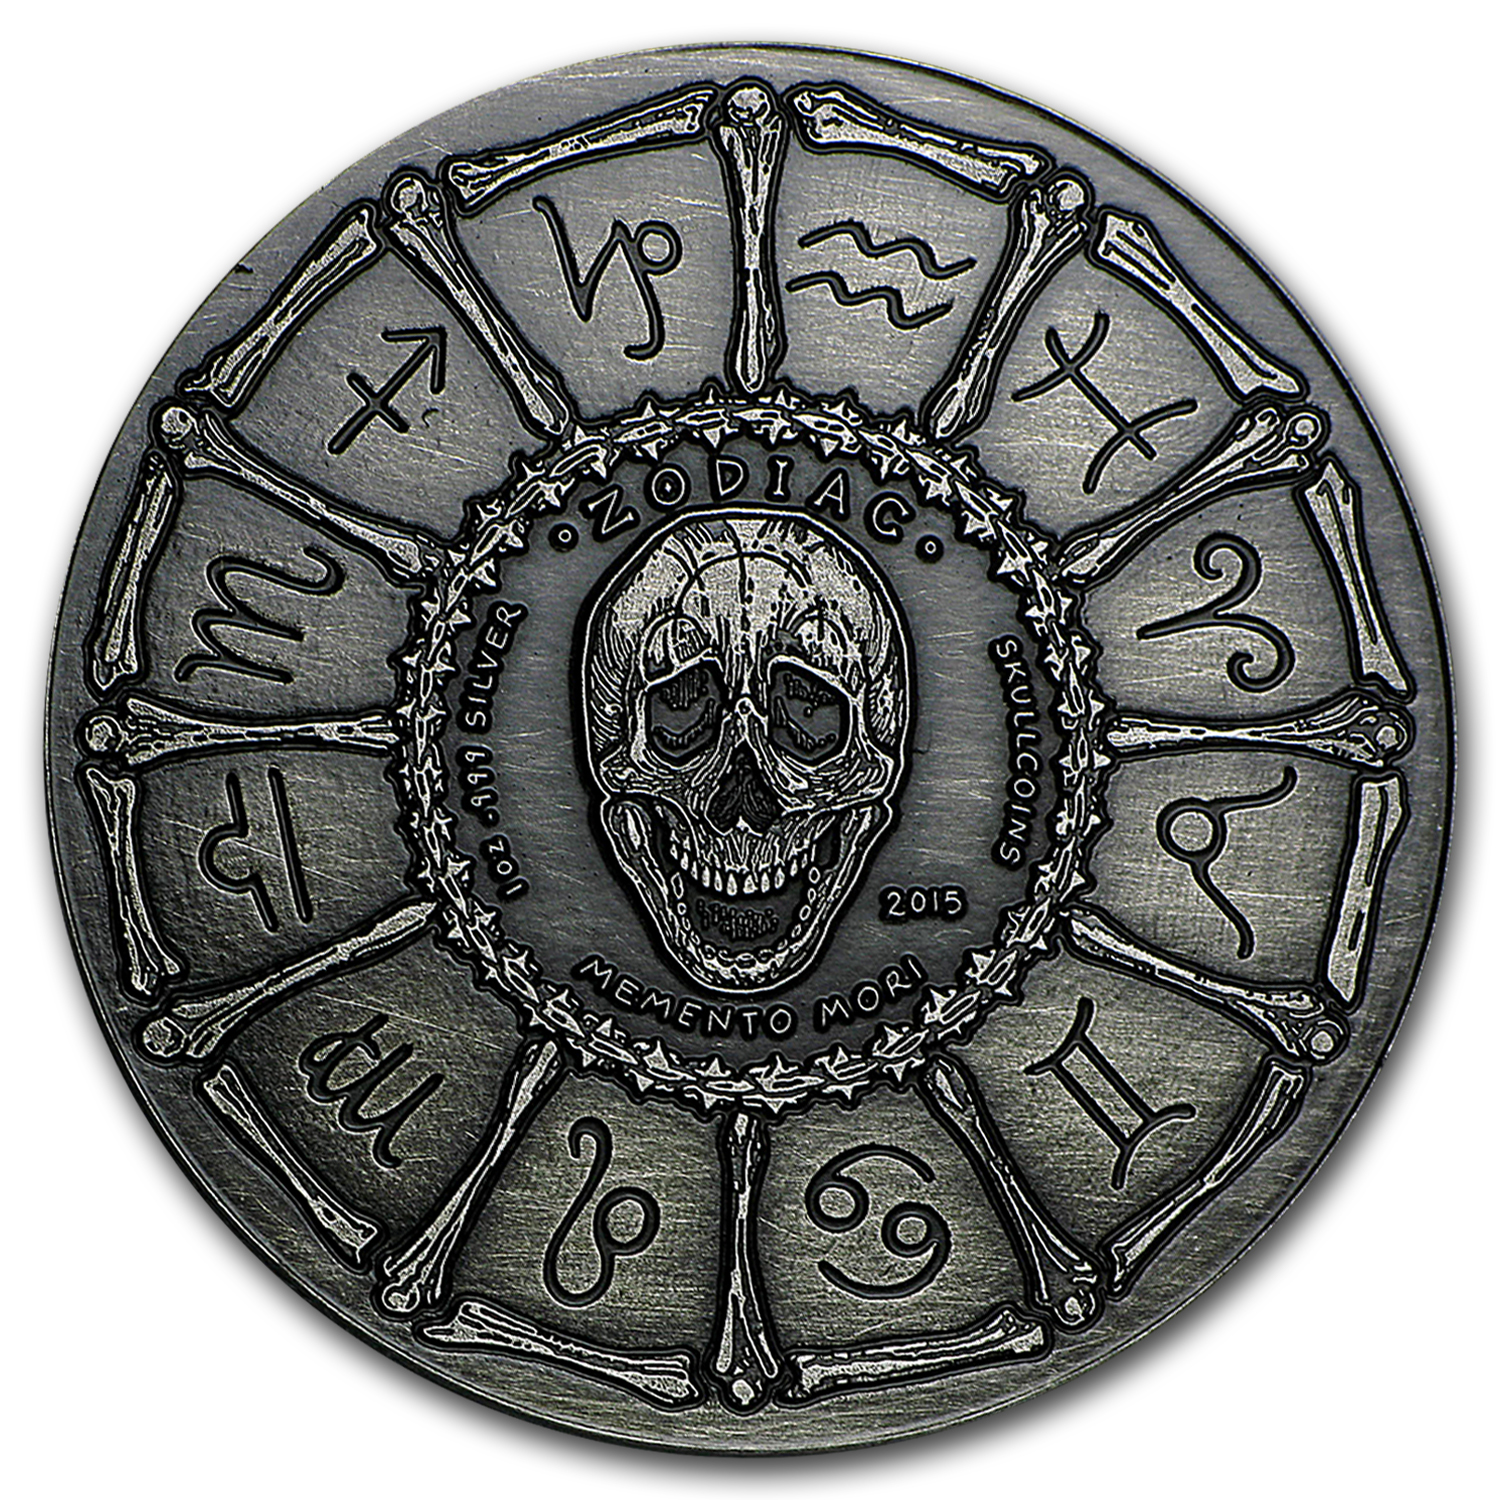 1 oz Silver Antique Round - Zodiac Skull Series (Leo)